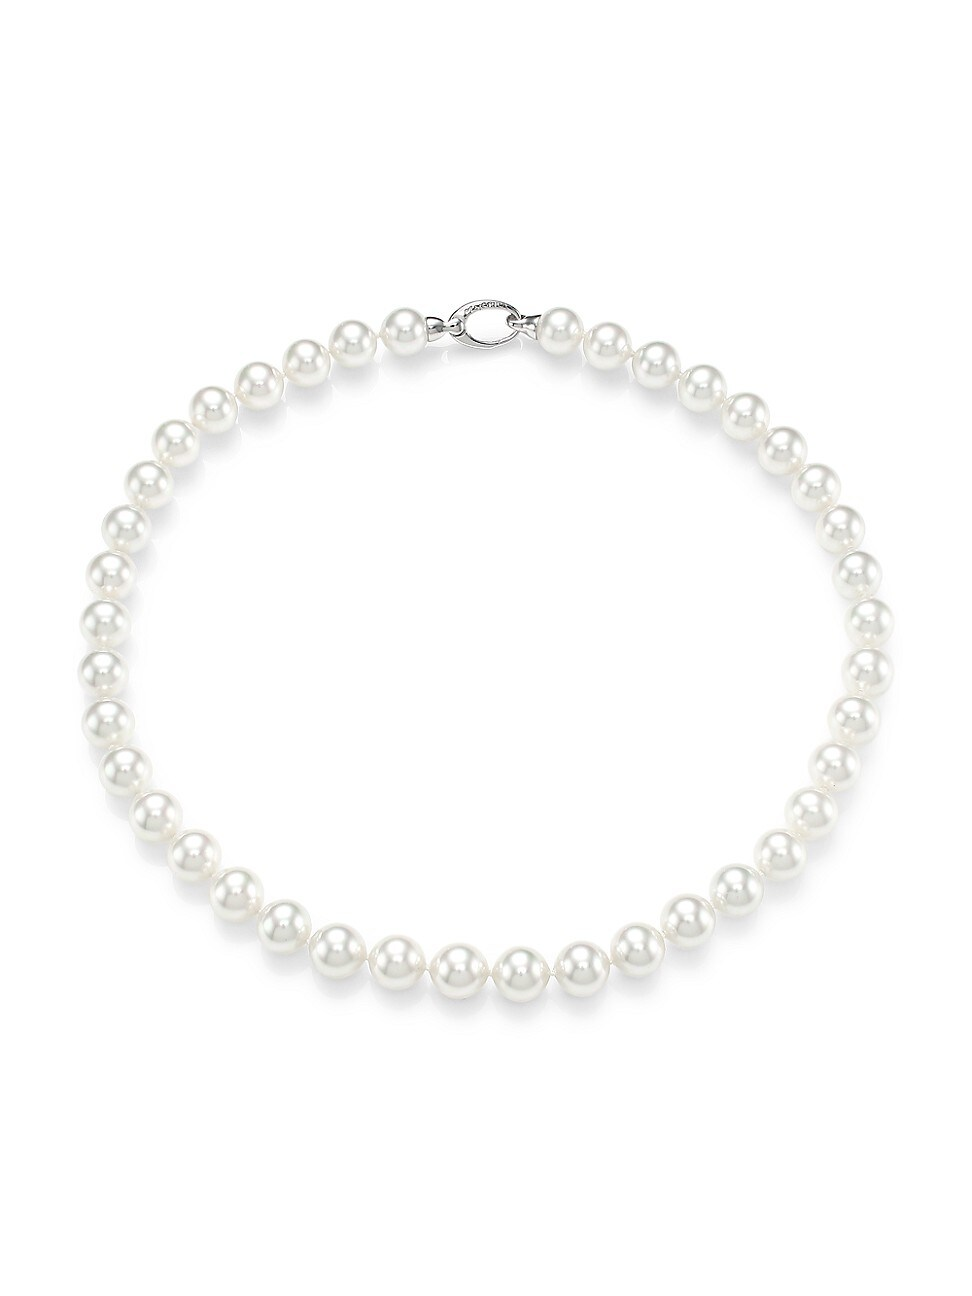 Majorica WOMEN'S 10MM WHITE ORGANIC MAN-MADE PEARL NECKLACE